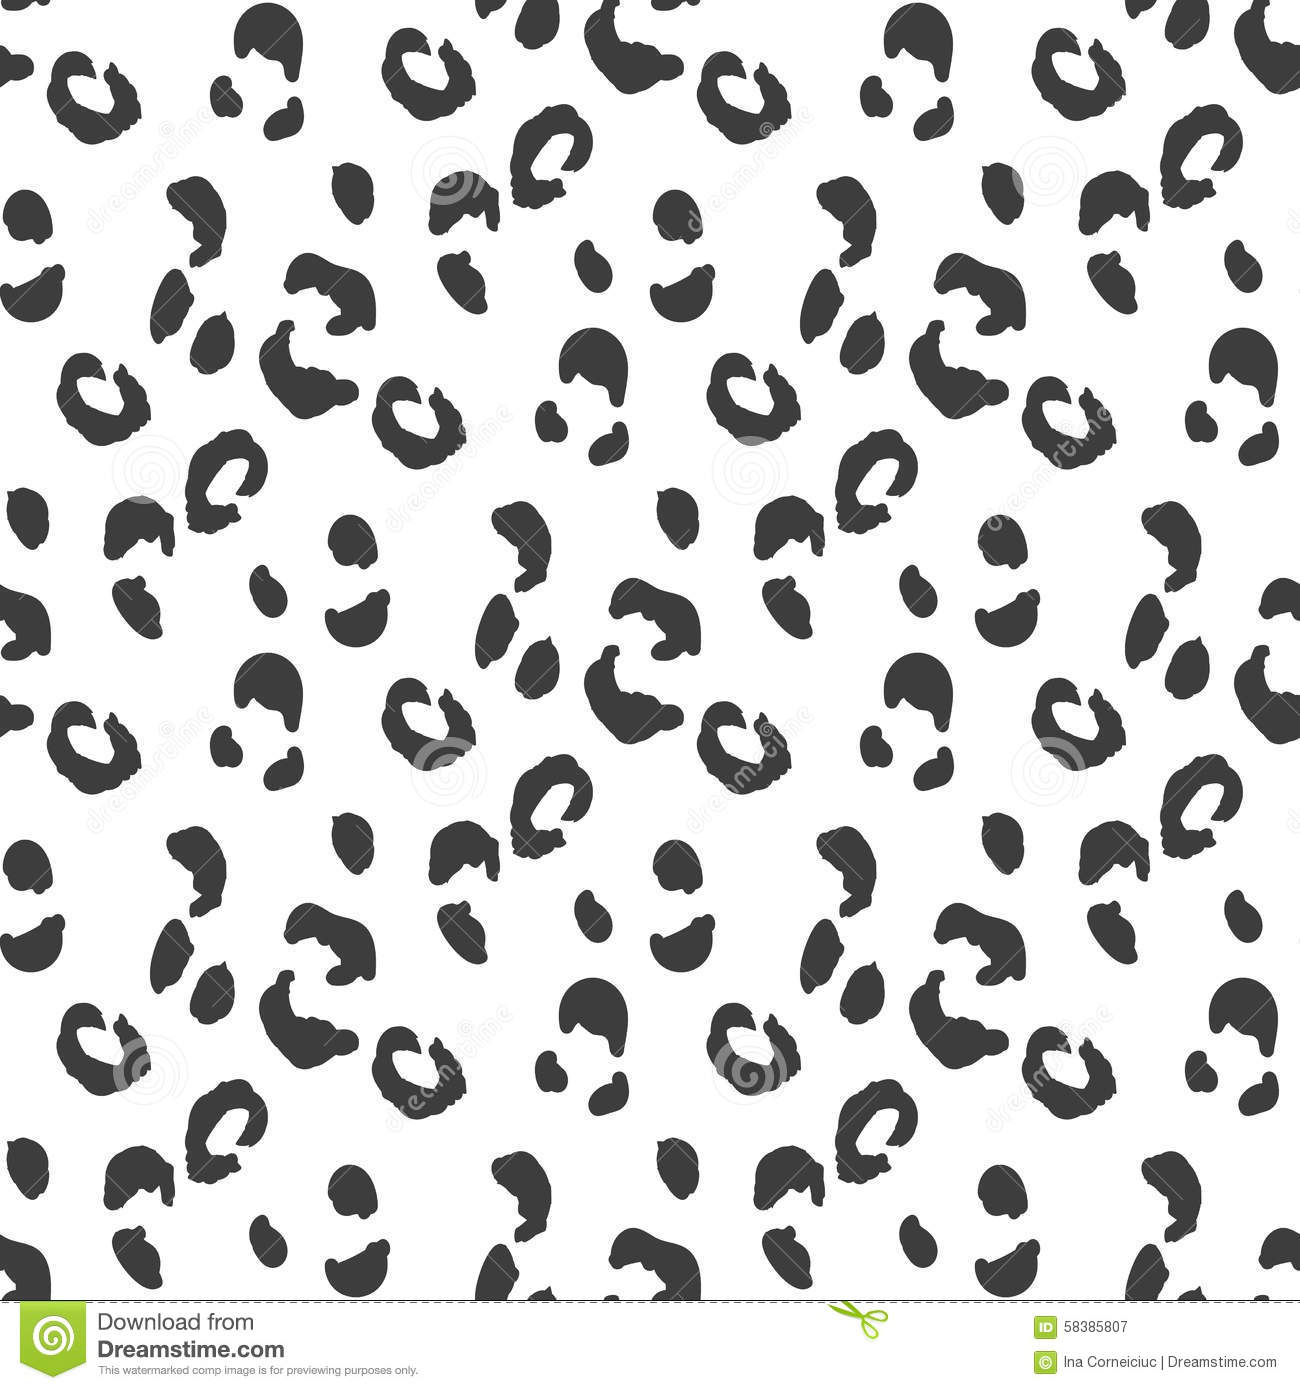 Leopard Skin Texture Cartoon Vector